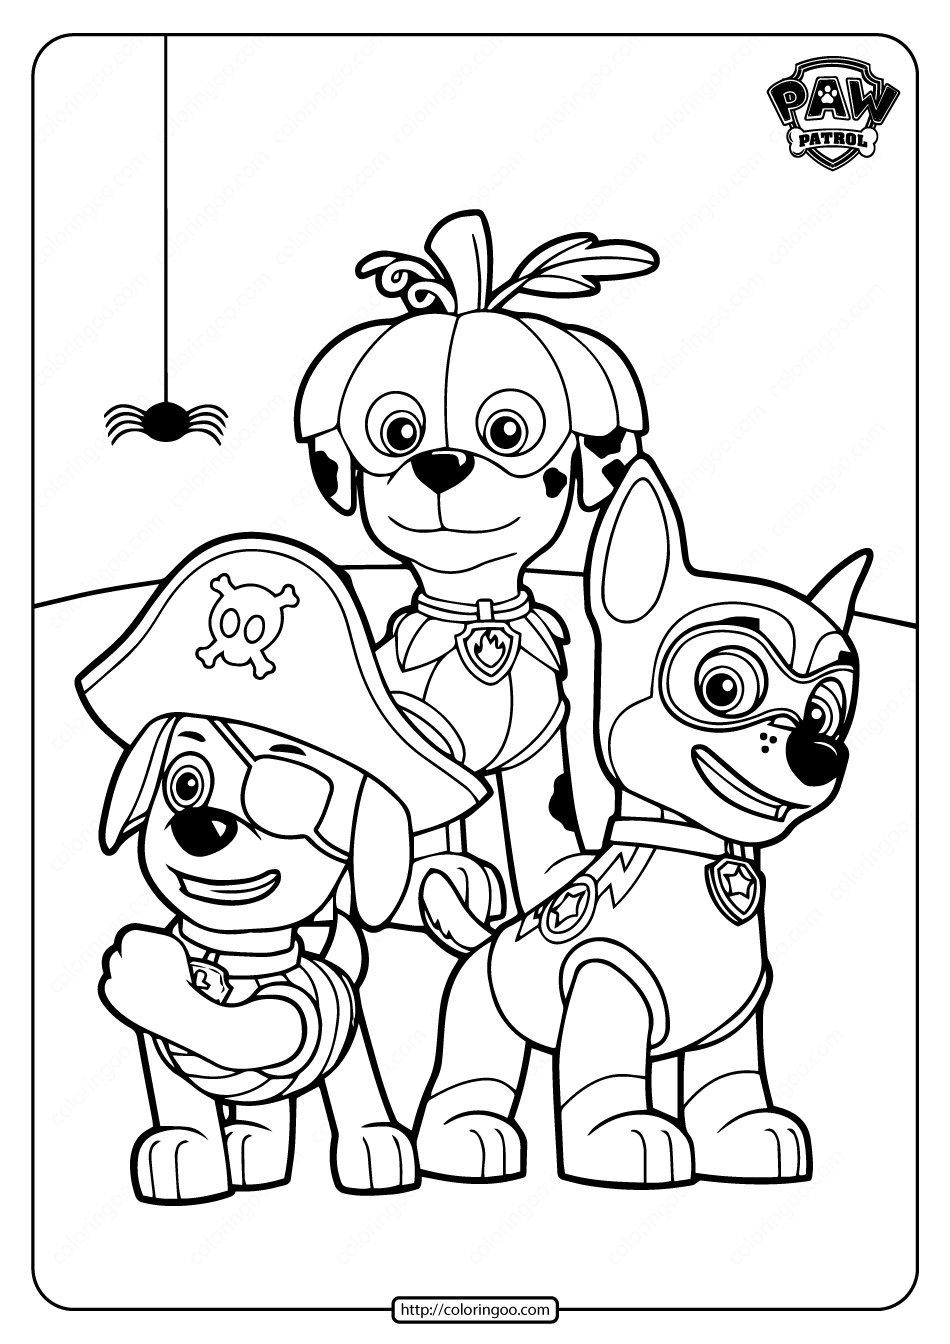 Happy Halloween Paw Patrol Coloring Pages